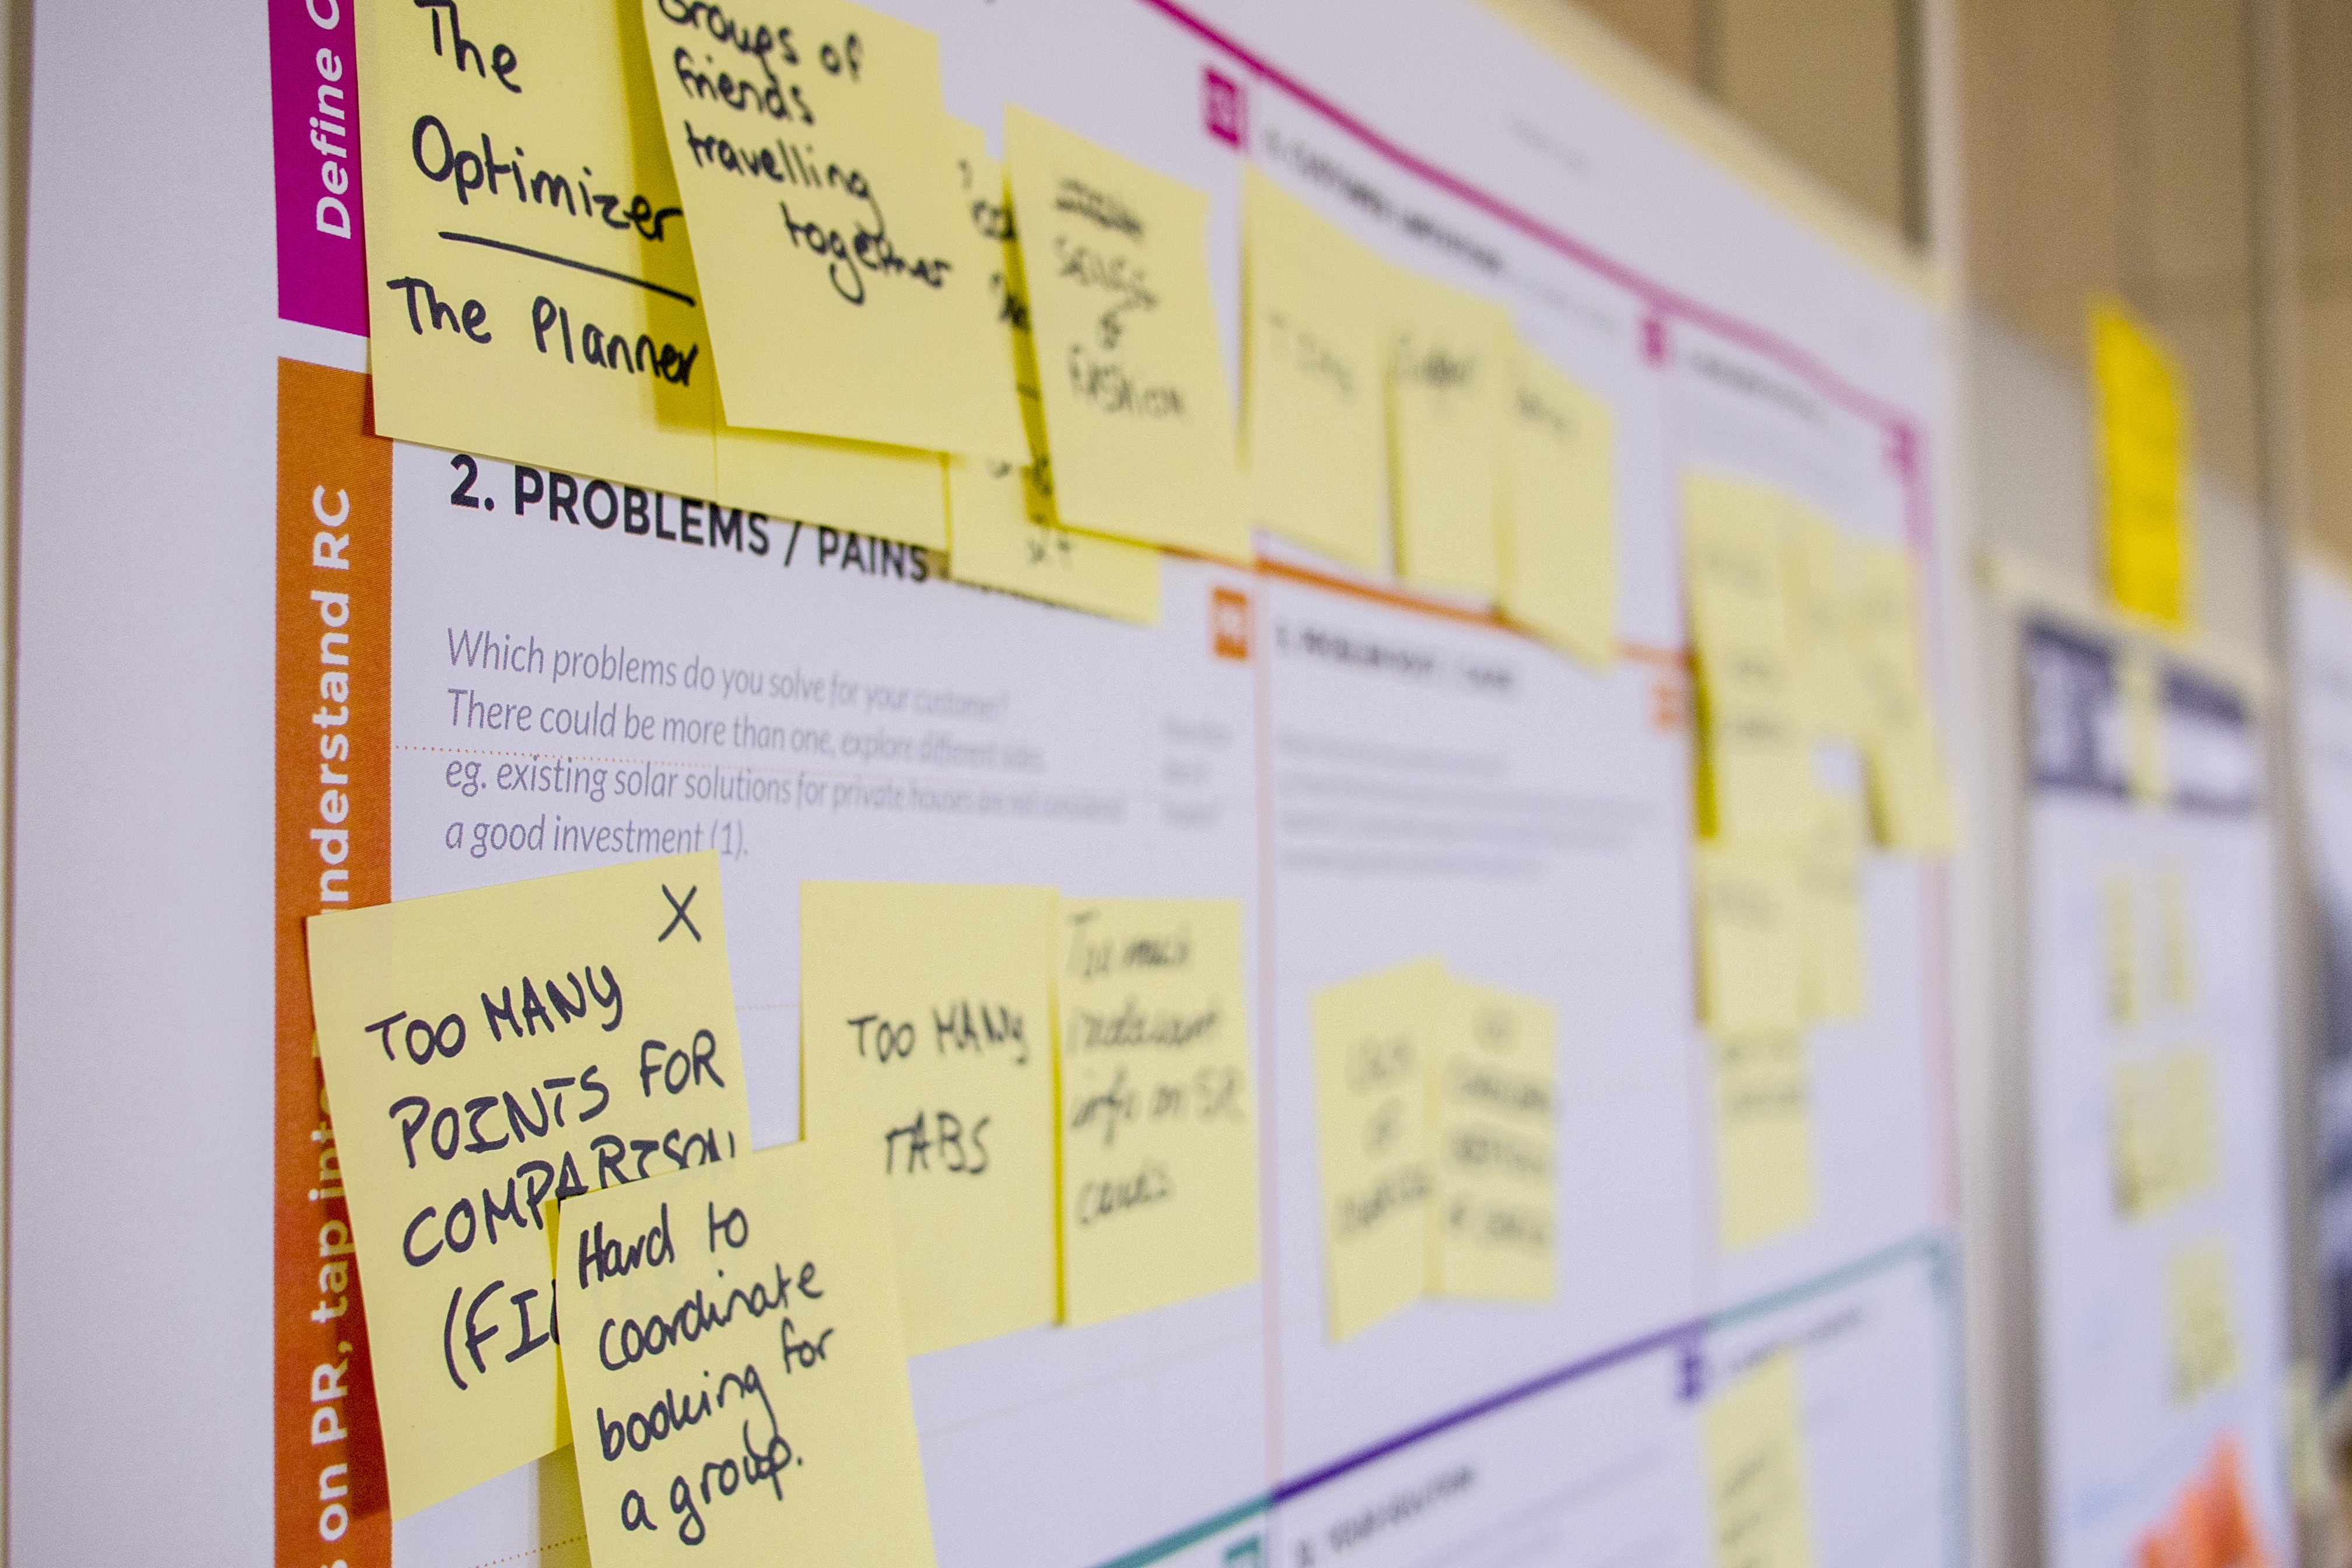 task-management-tips-to-stop-procrastinating-and-get-more-done